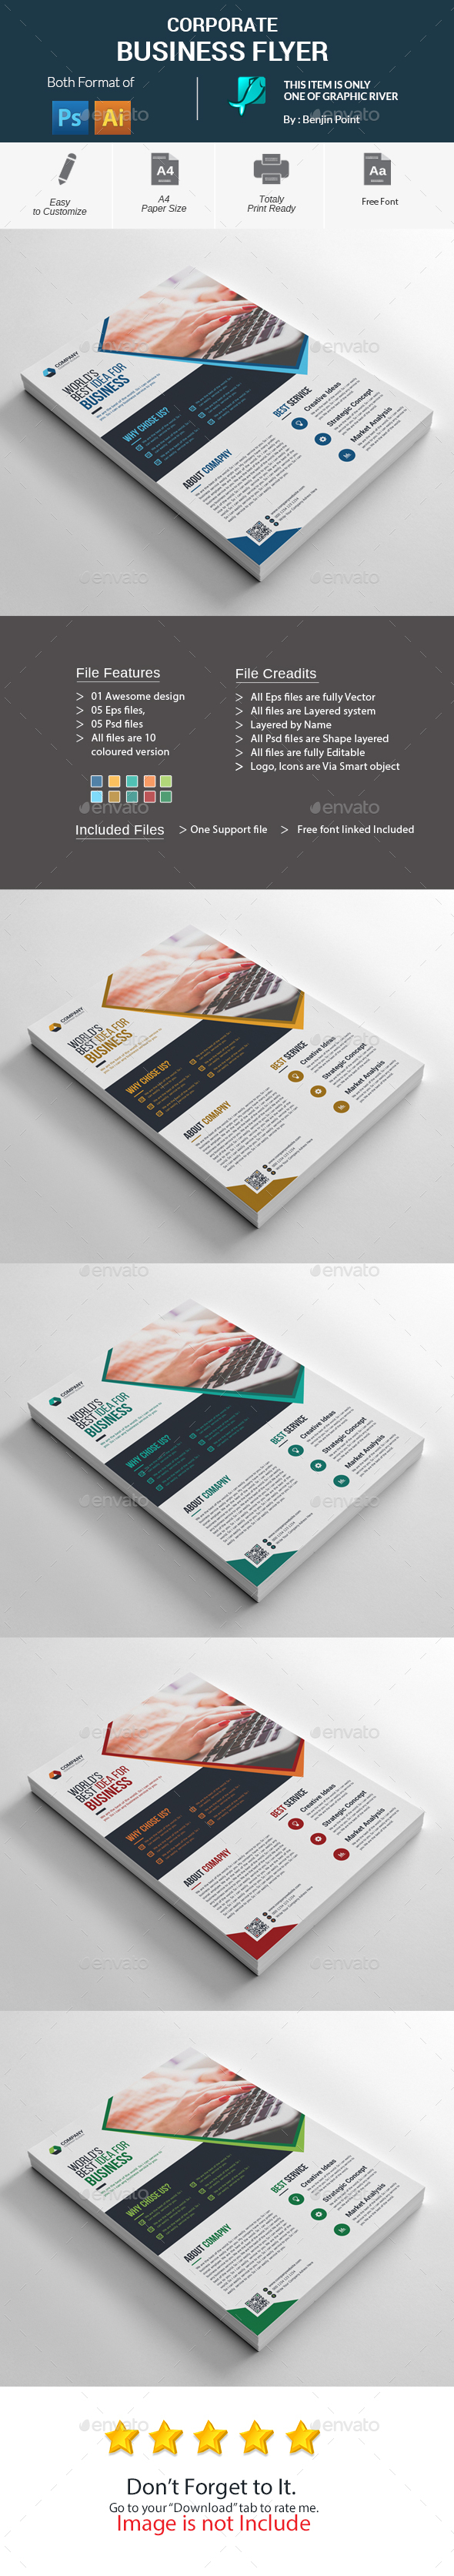 GraphicRiver Corporate Business Flyer 20985293